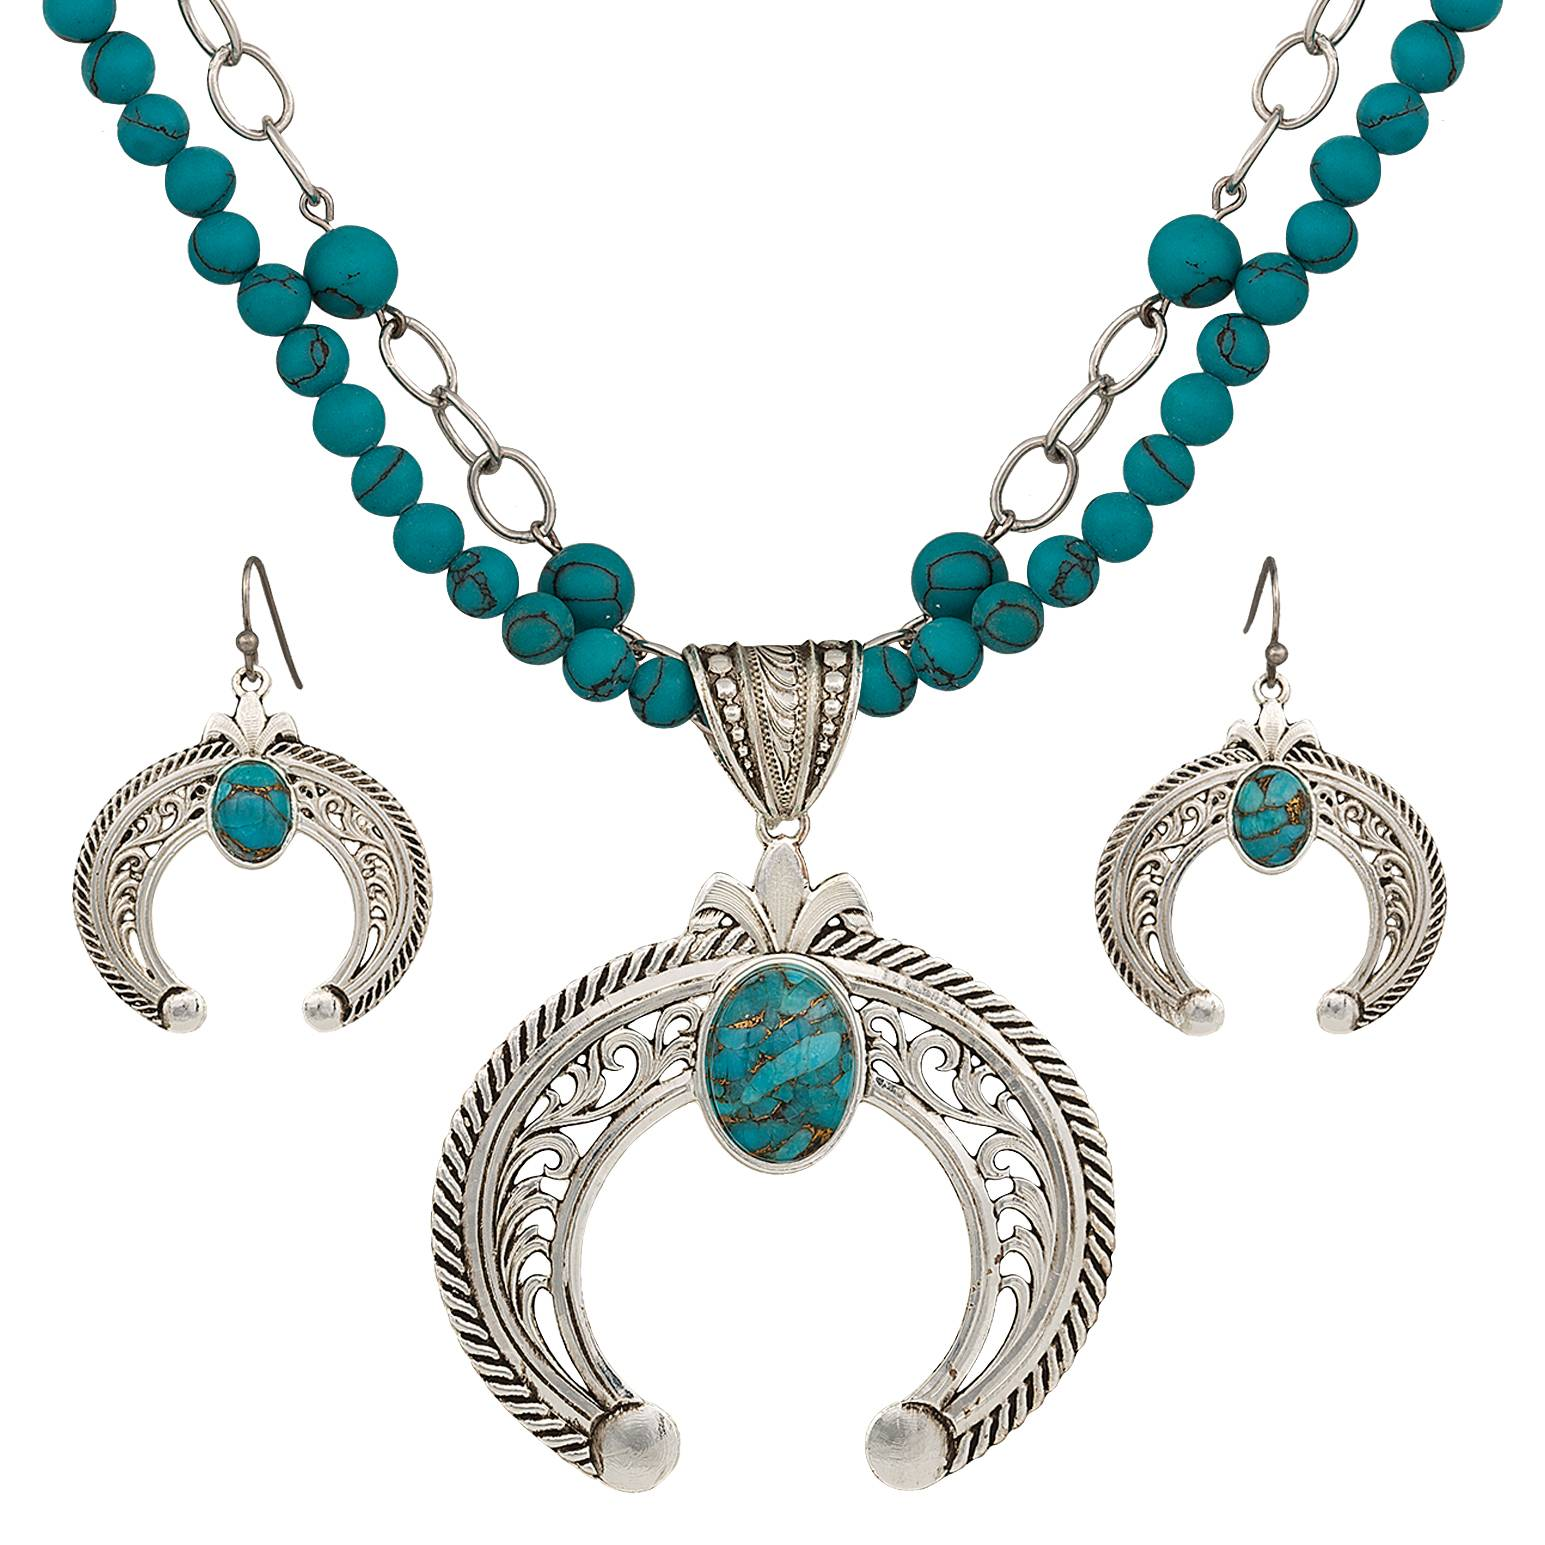 Montana Silversmiths Squash Blossom Statement Jewelry Set